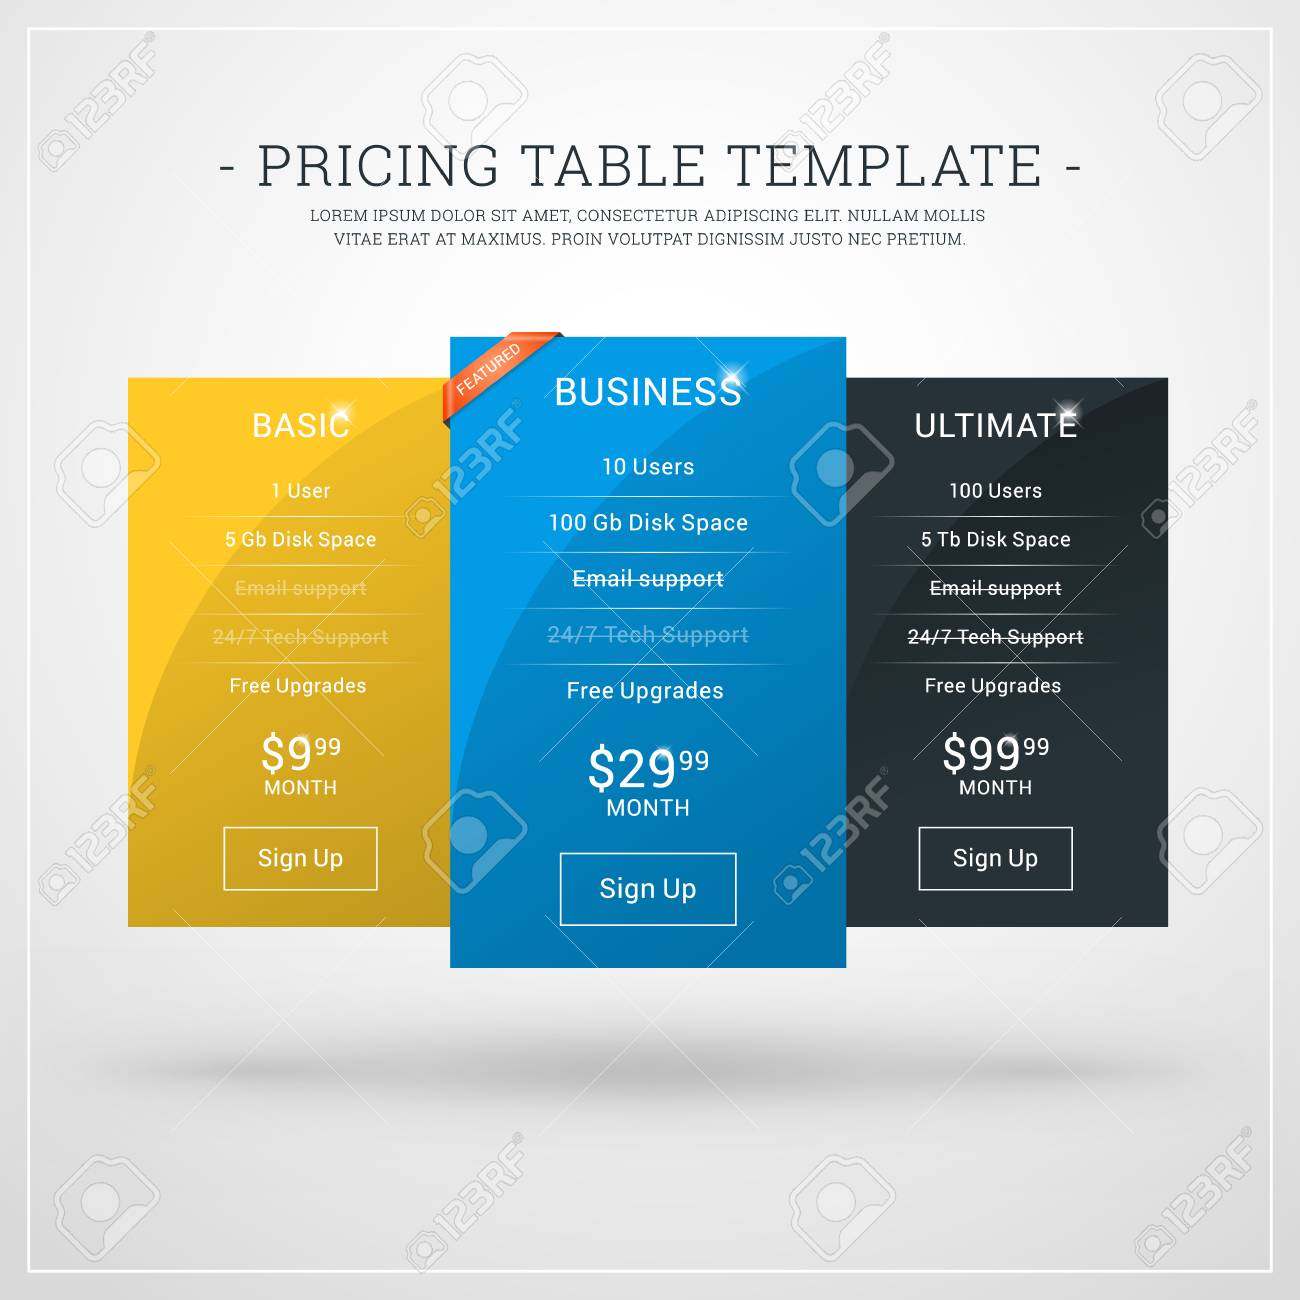 Design Template For Pricing Table For Websites And Applications